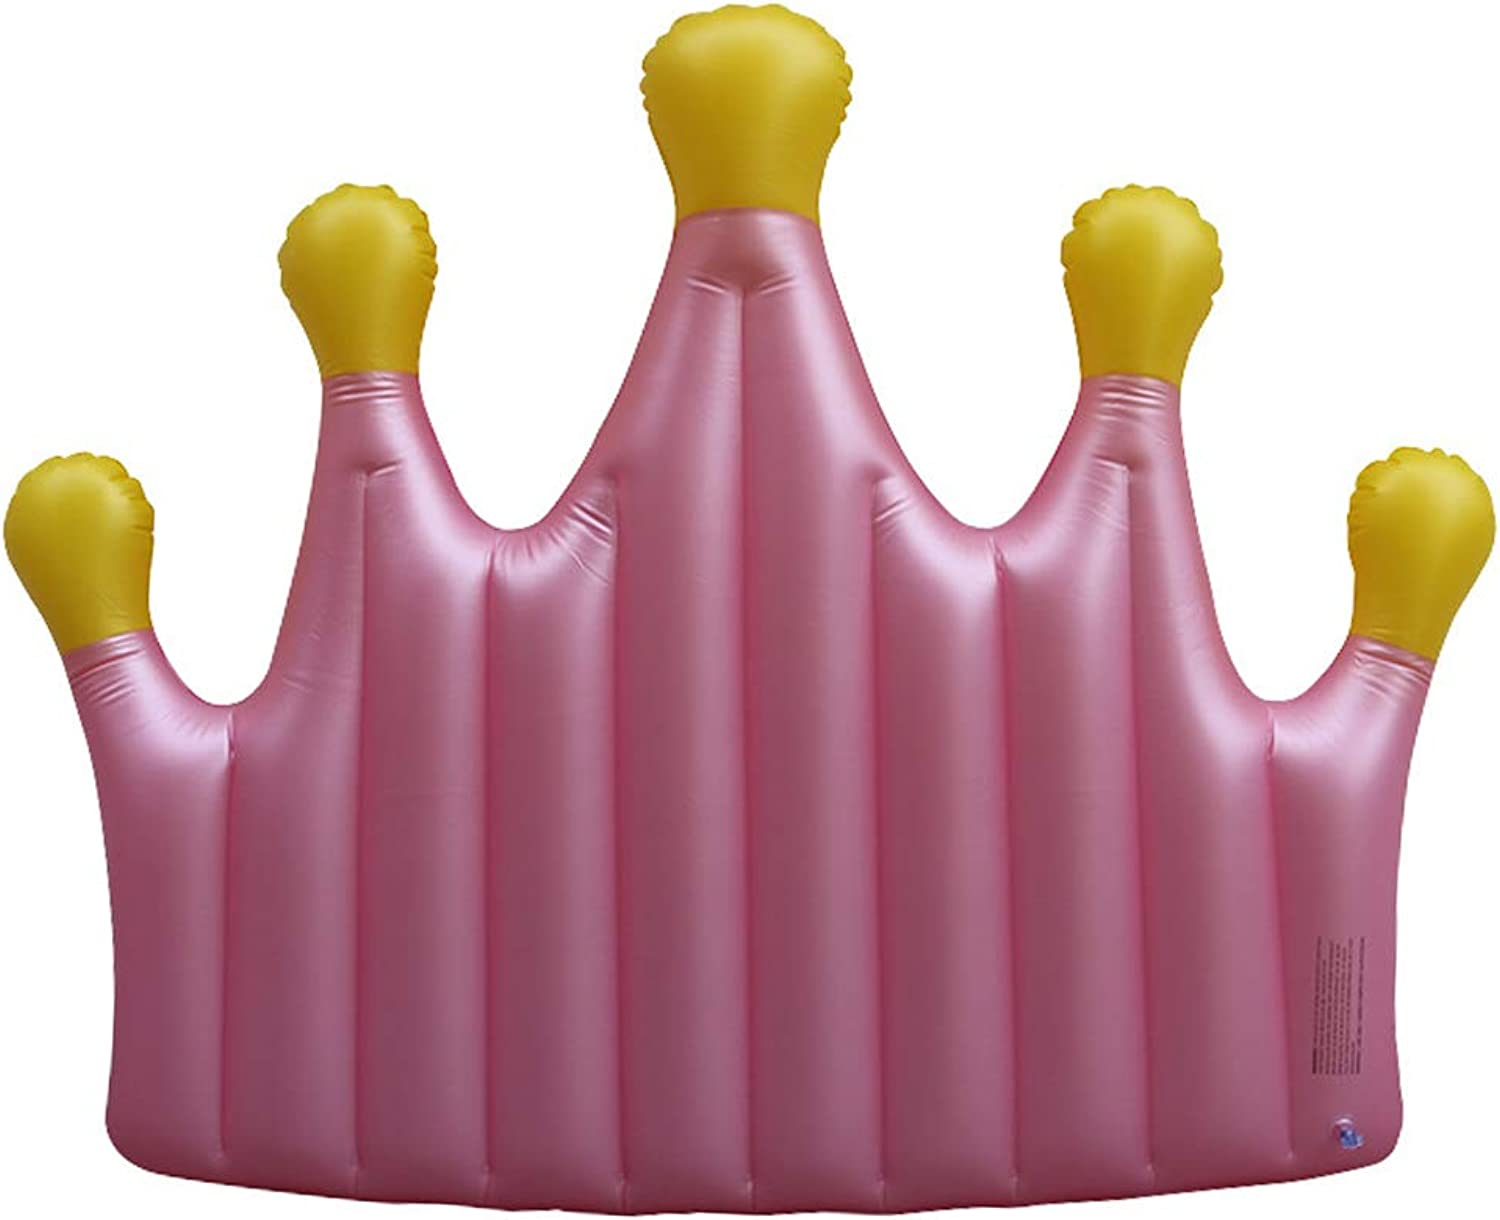 Inflatable Pool Float Swim Floating Ring Pink crown floating bed Thicken for Adults Kids Loungers Chair Toy Air Bed Beach Mat Water Hammock